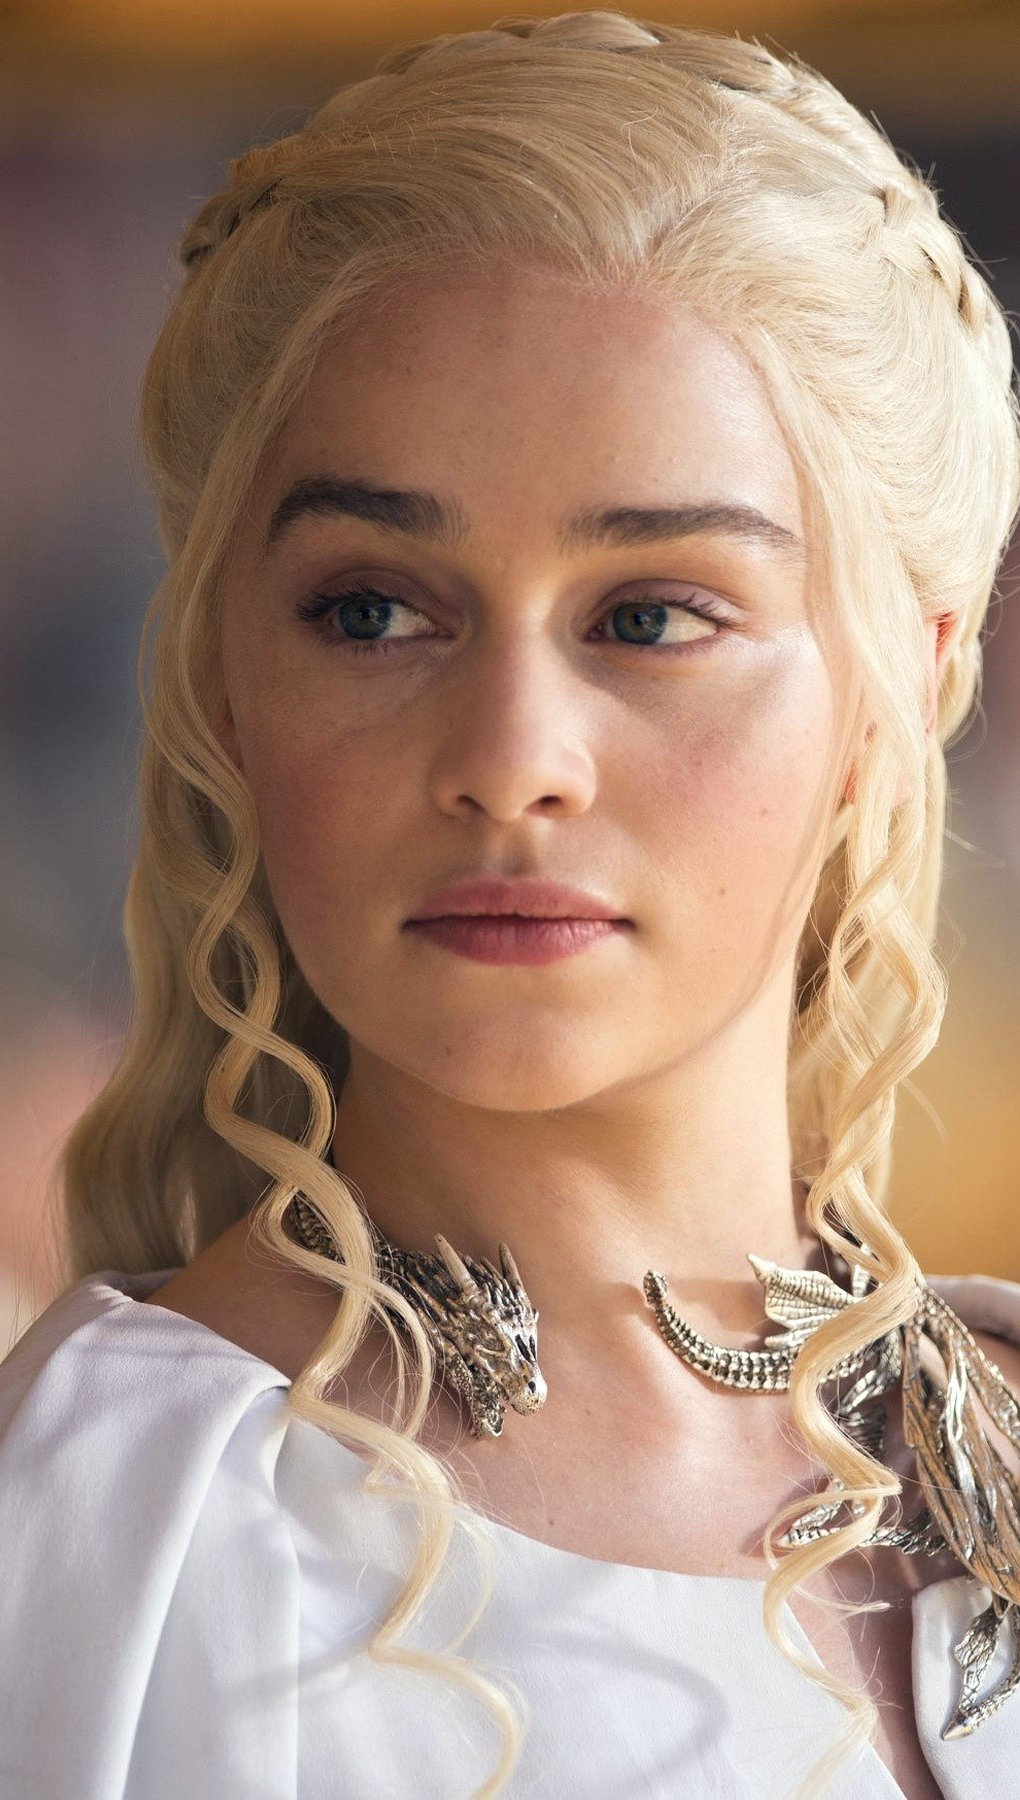 Wallpaper Daenerys Stomborn in Game of Thrones Vertical